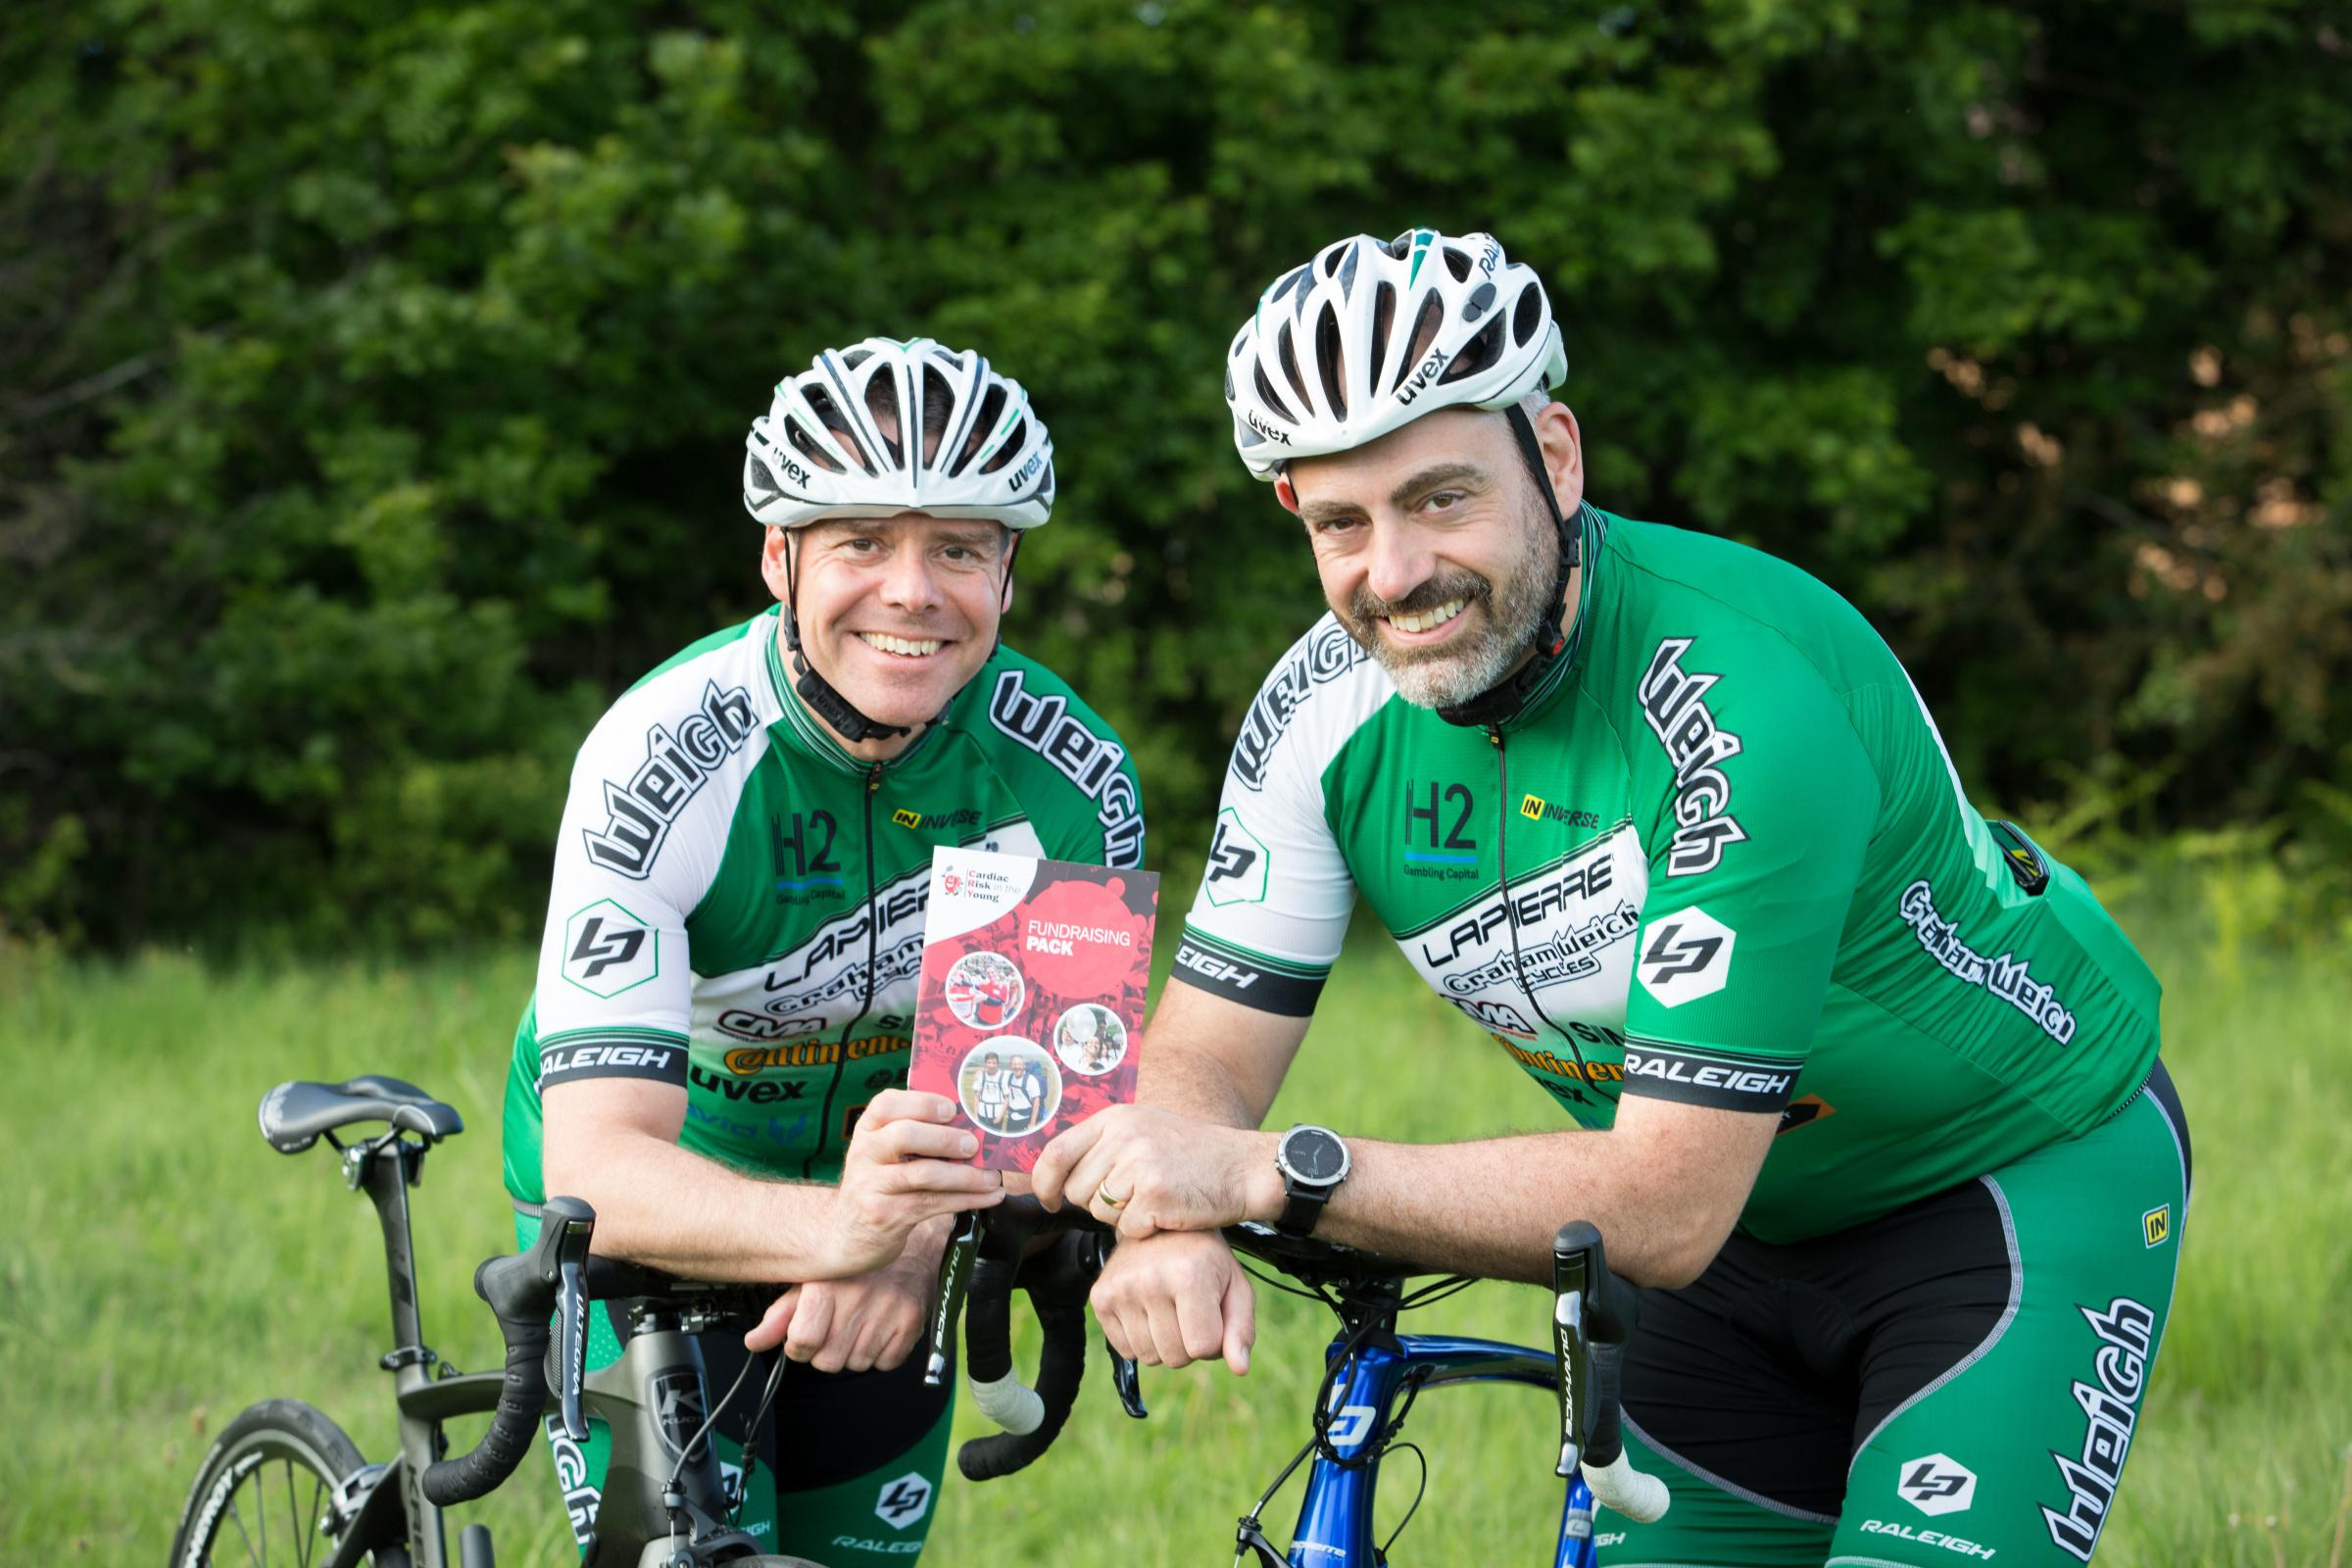 Connah's Quay men to cycle over 900 miles in memory of their late friend